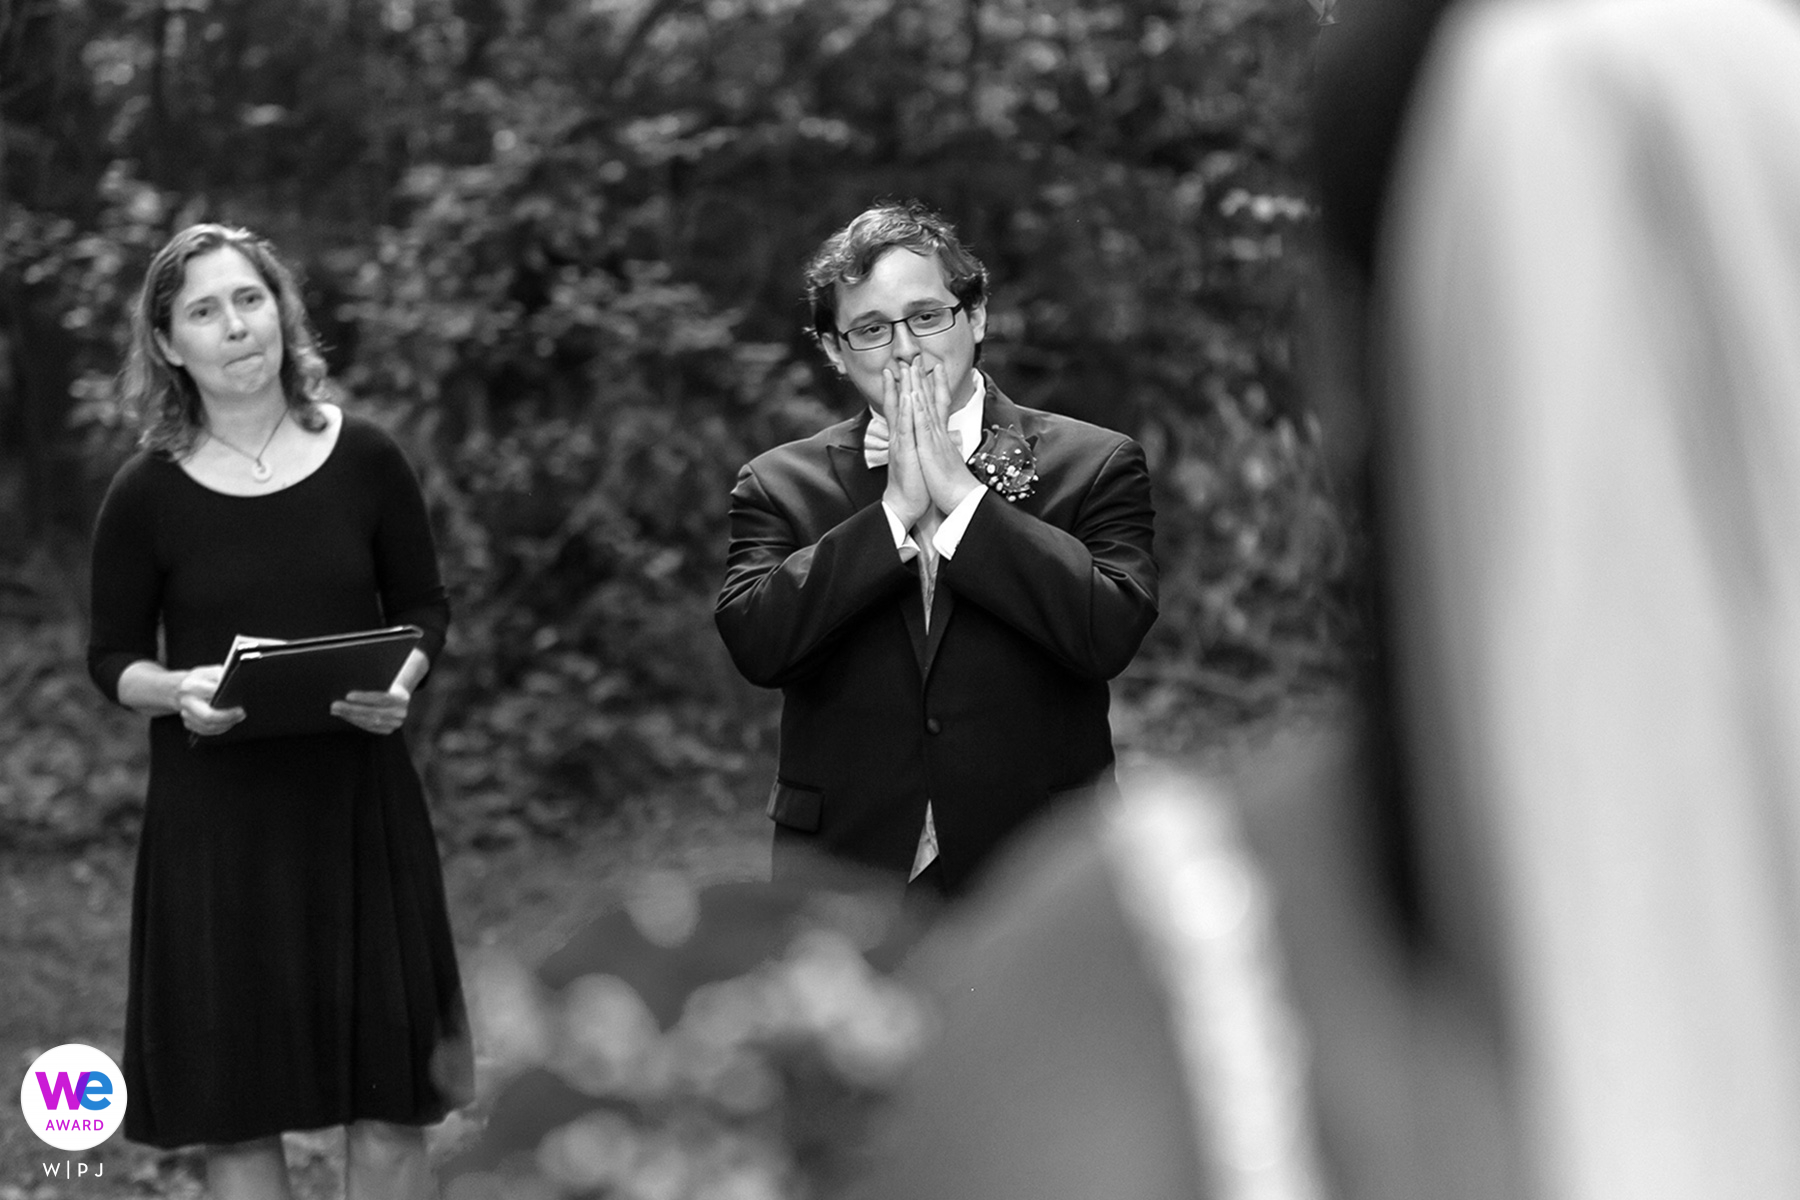 Intimate Backyard Wedding Photography | The groom sees the bride for the first time in her wedding dress